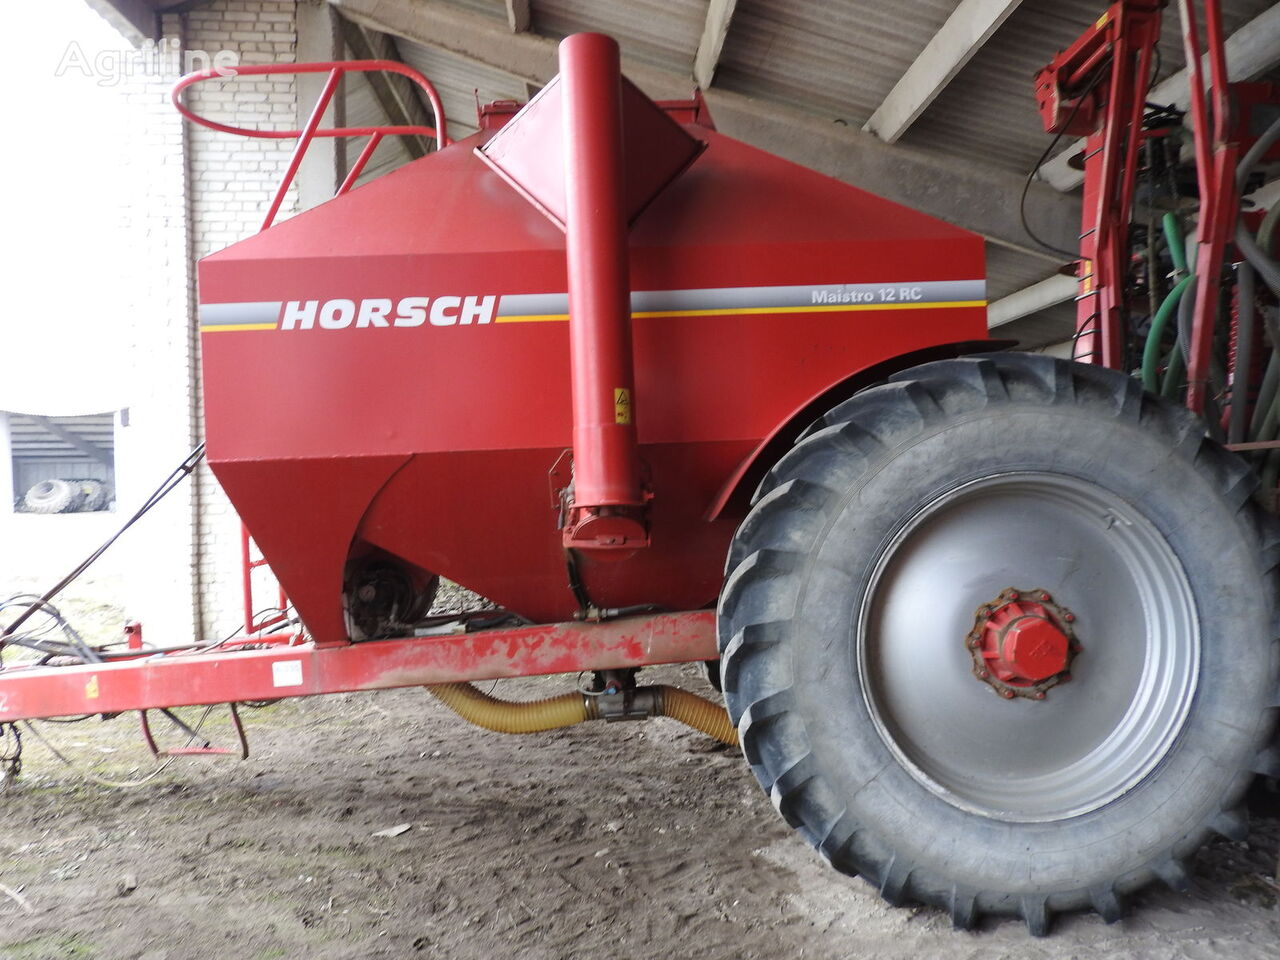 HORSCH Maistro 12 RC mechanische precisiezaaimachine